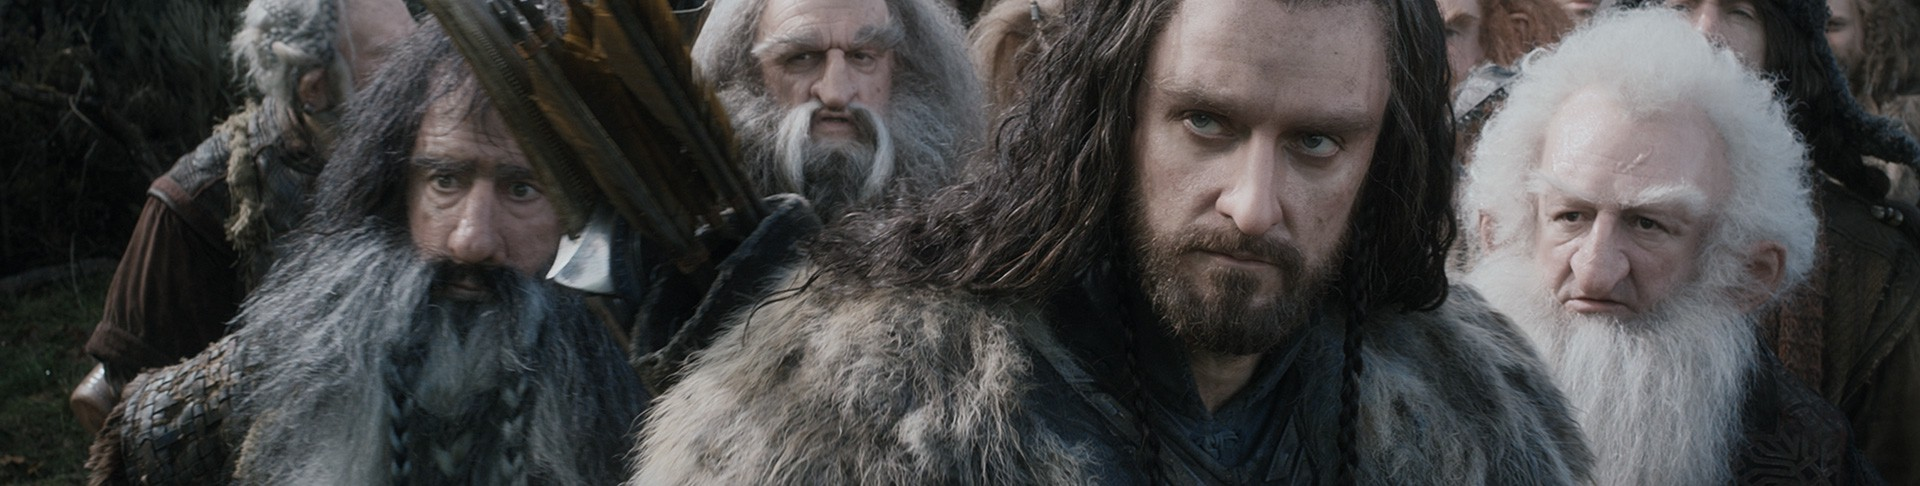 The Hobbit: The Desolation of Smaug (Extended)